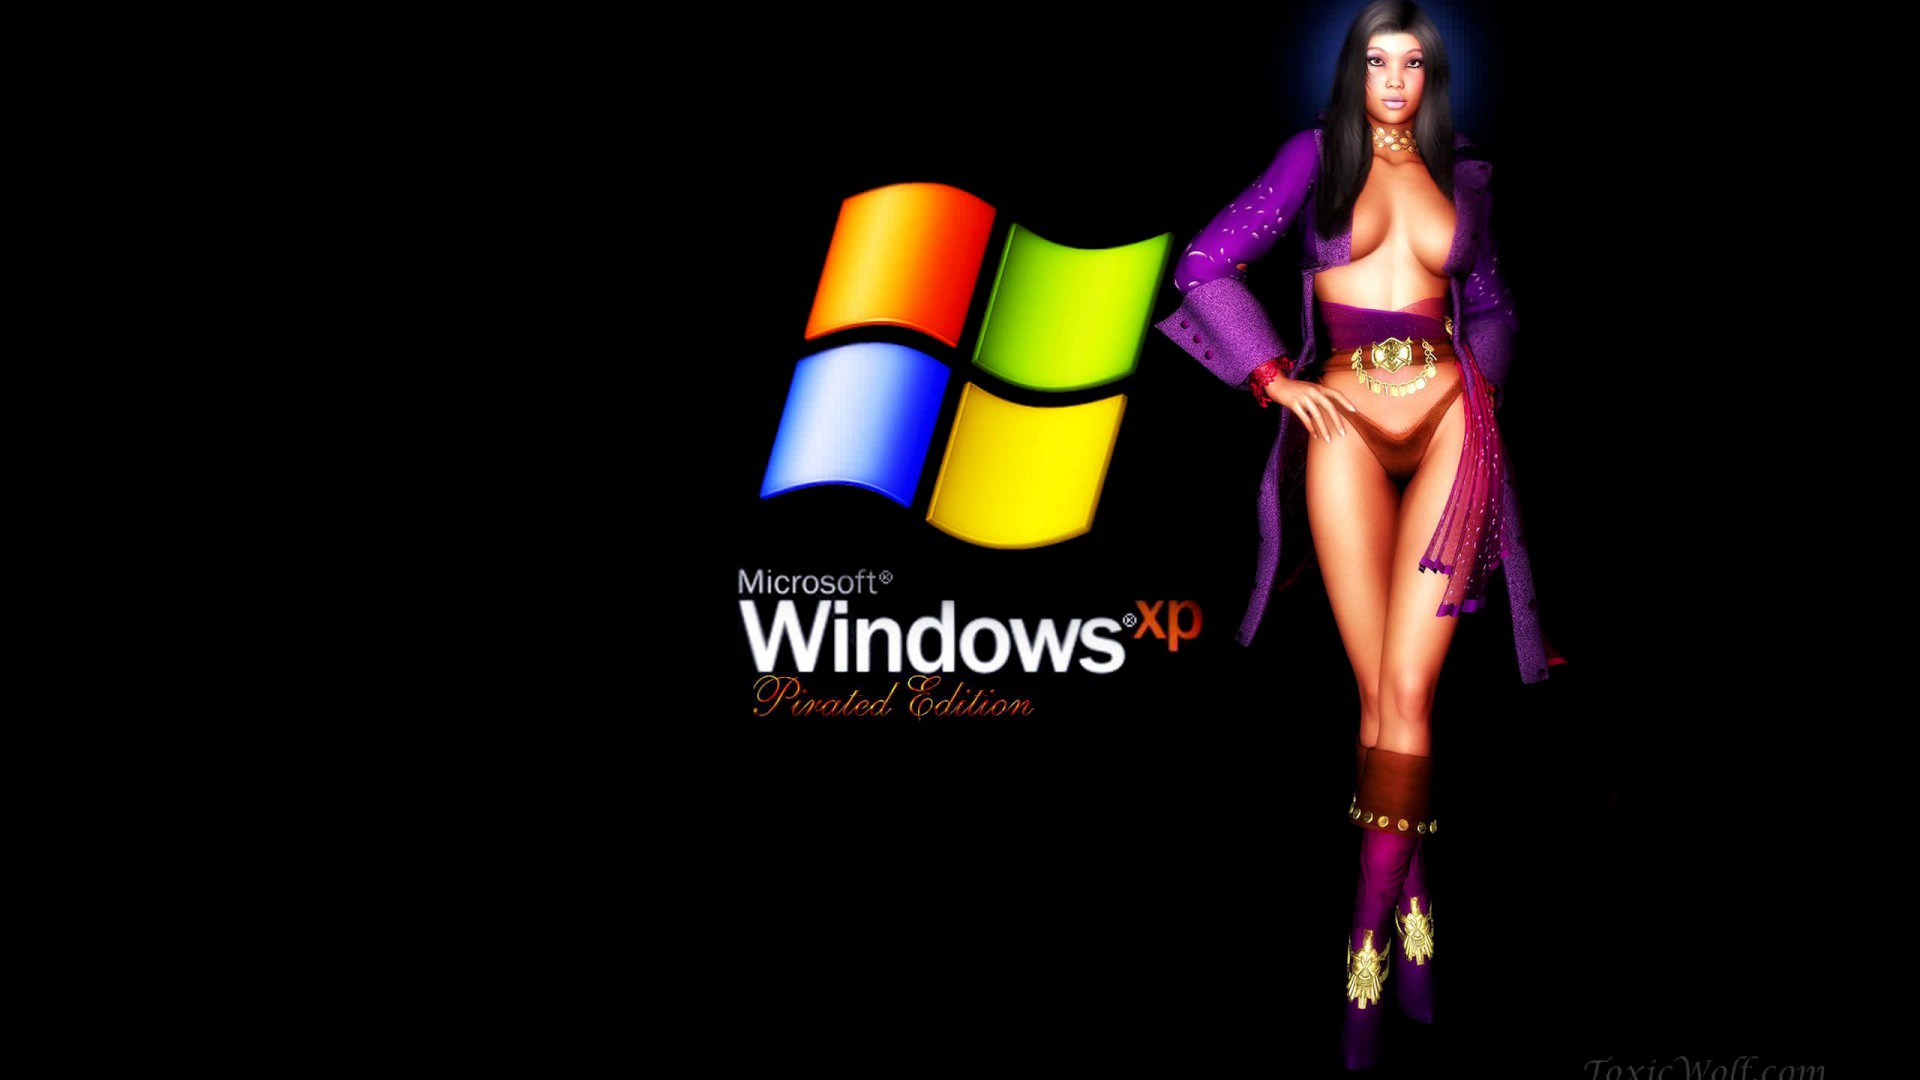 golie-devushki-i-windows-oboi